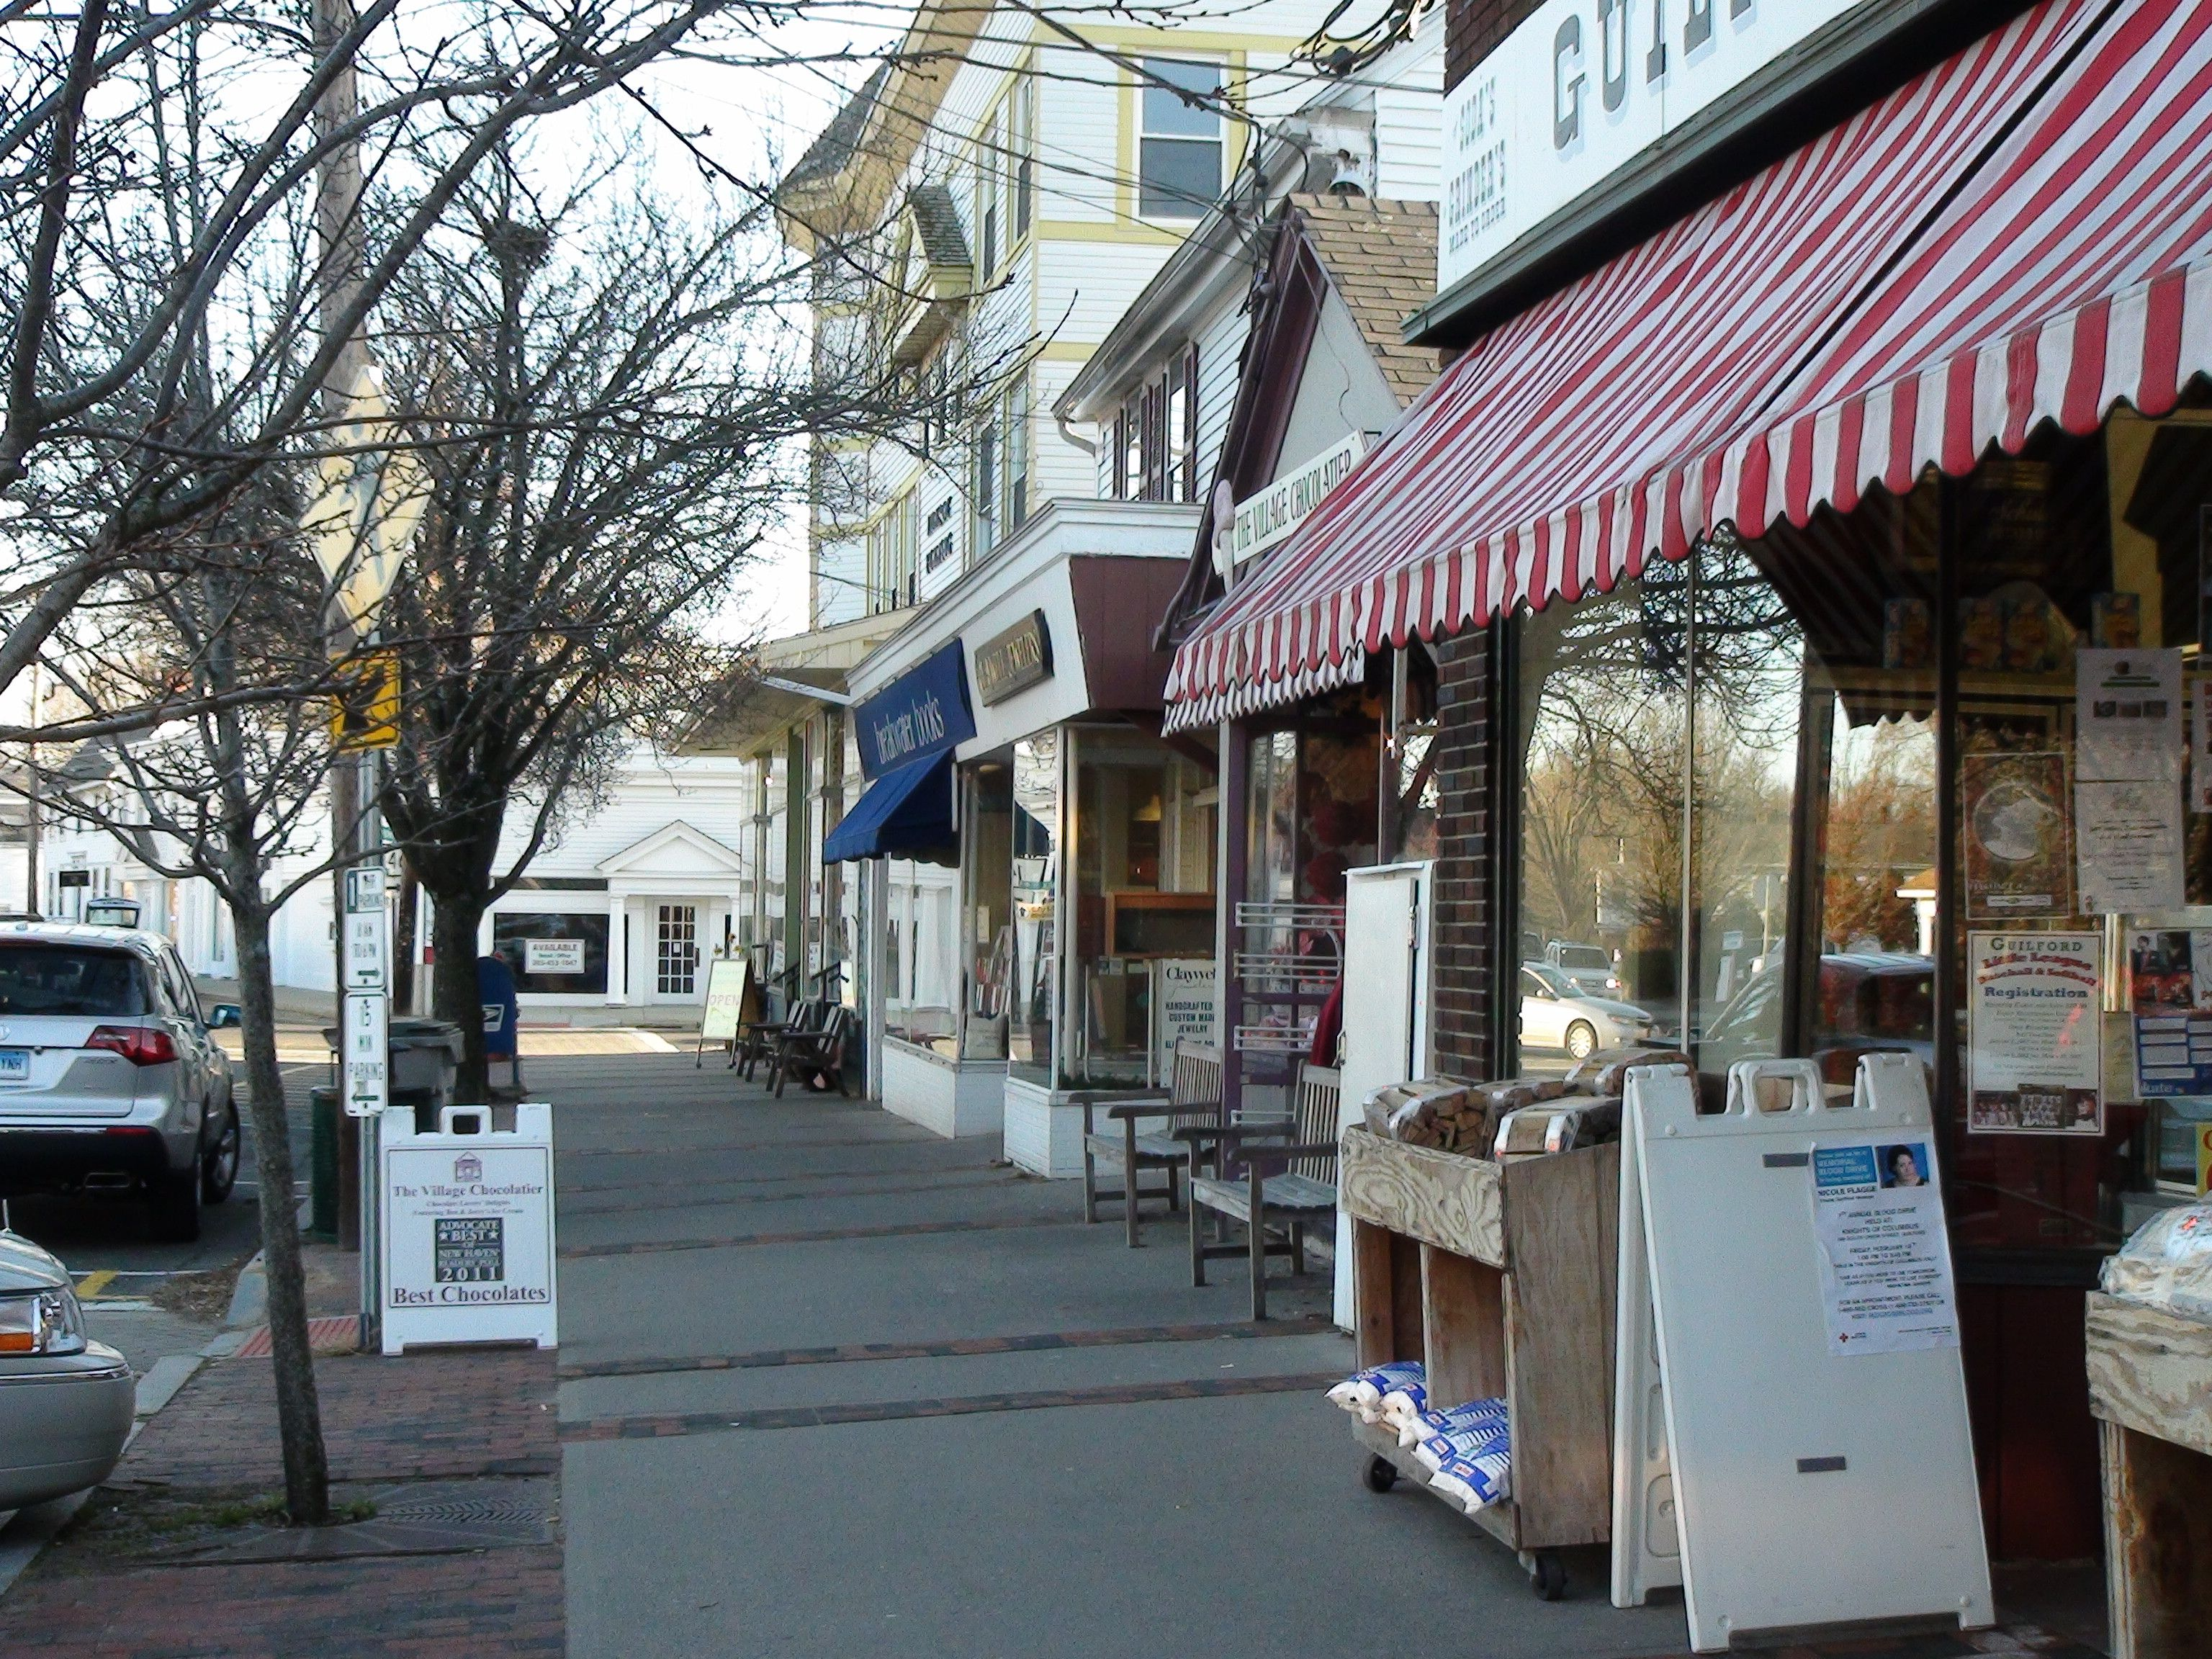 Whitfield Street, Guilford, Connecticut | Guilford, CT